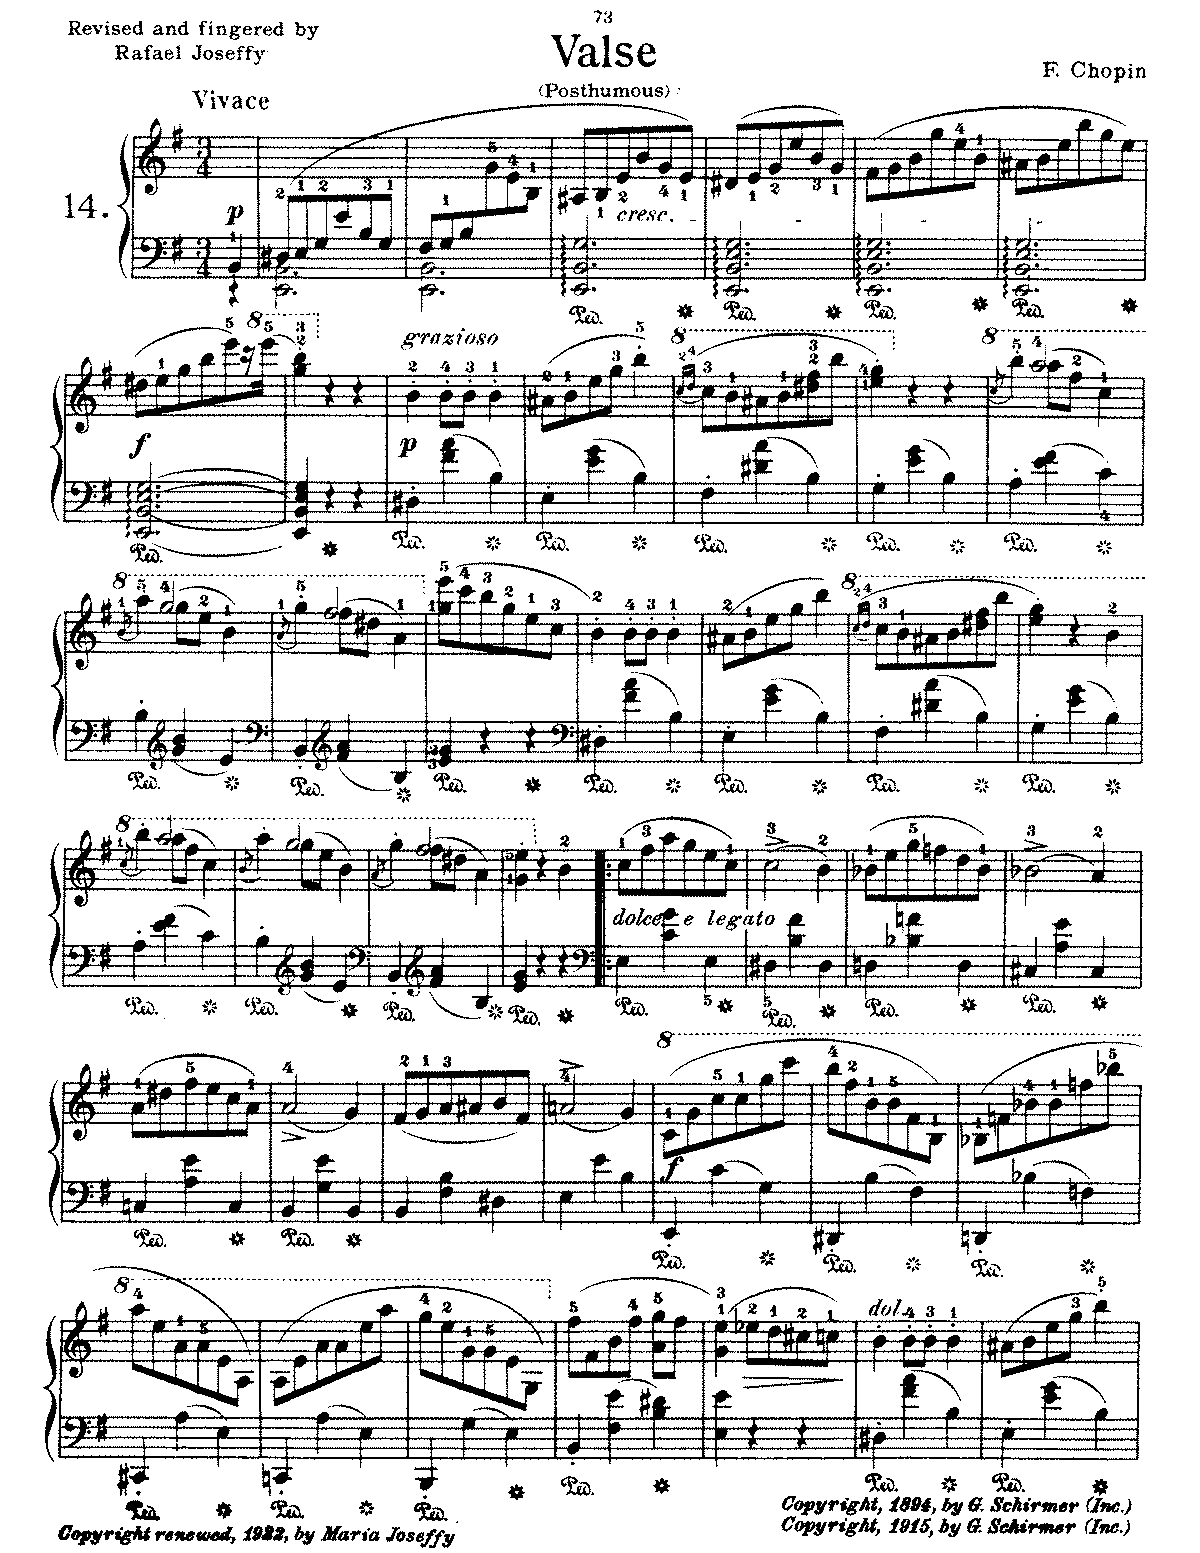 PMLP02380-FChopin Waltz in E minor, B.56 Joseffy.pdf